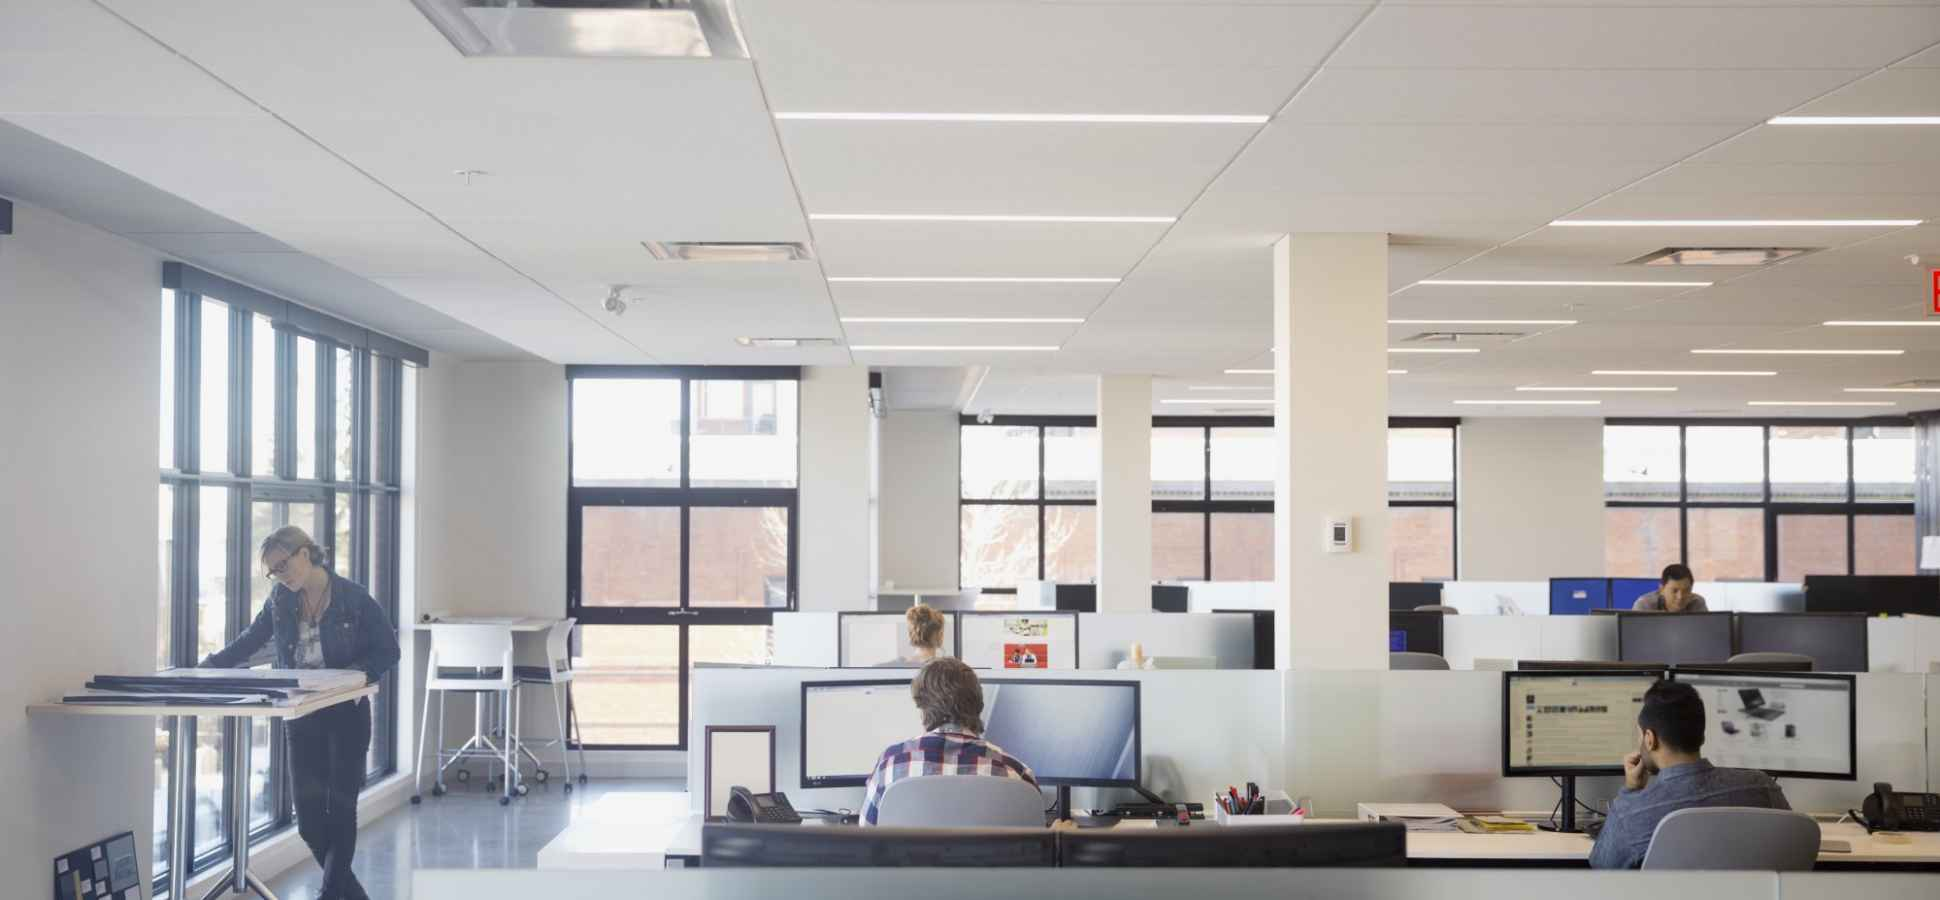 5 Awesome Offices That Lead to Happy, Productive Cultures